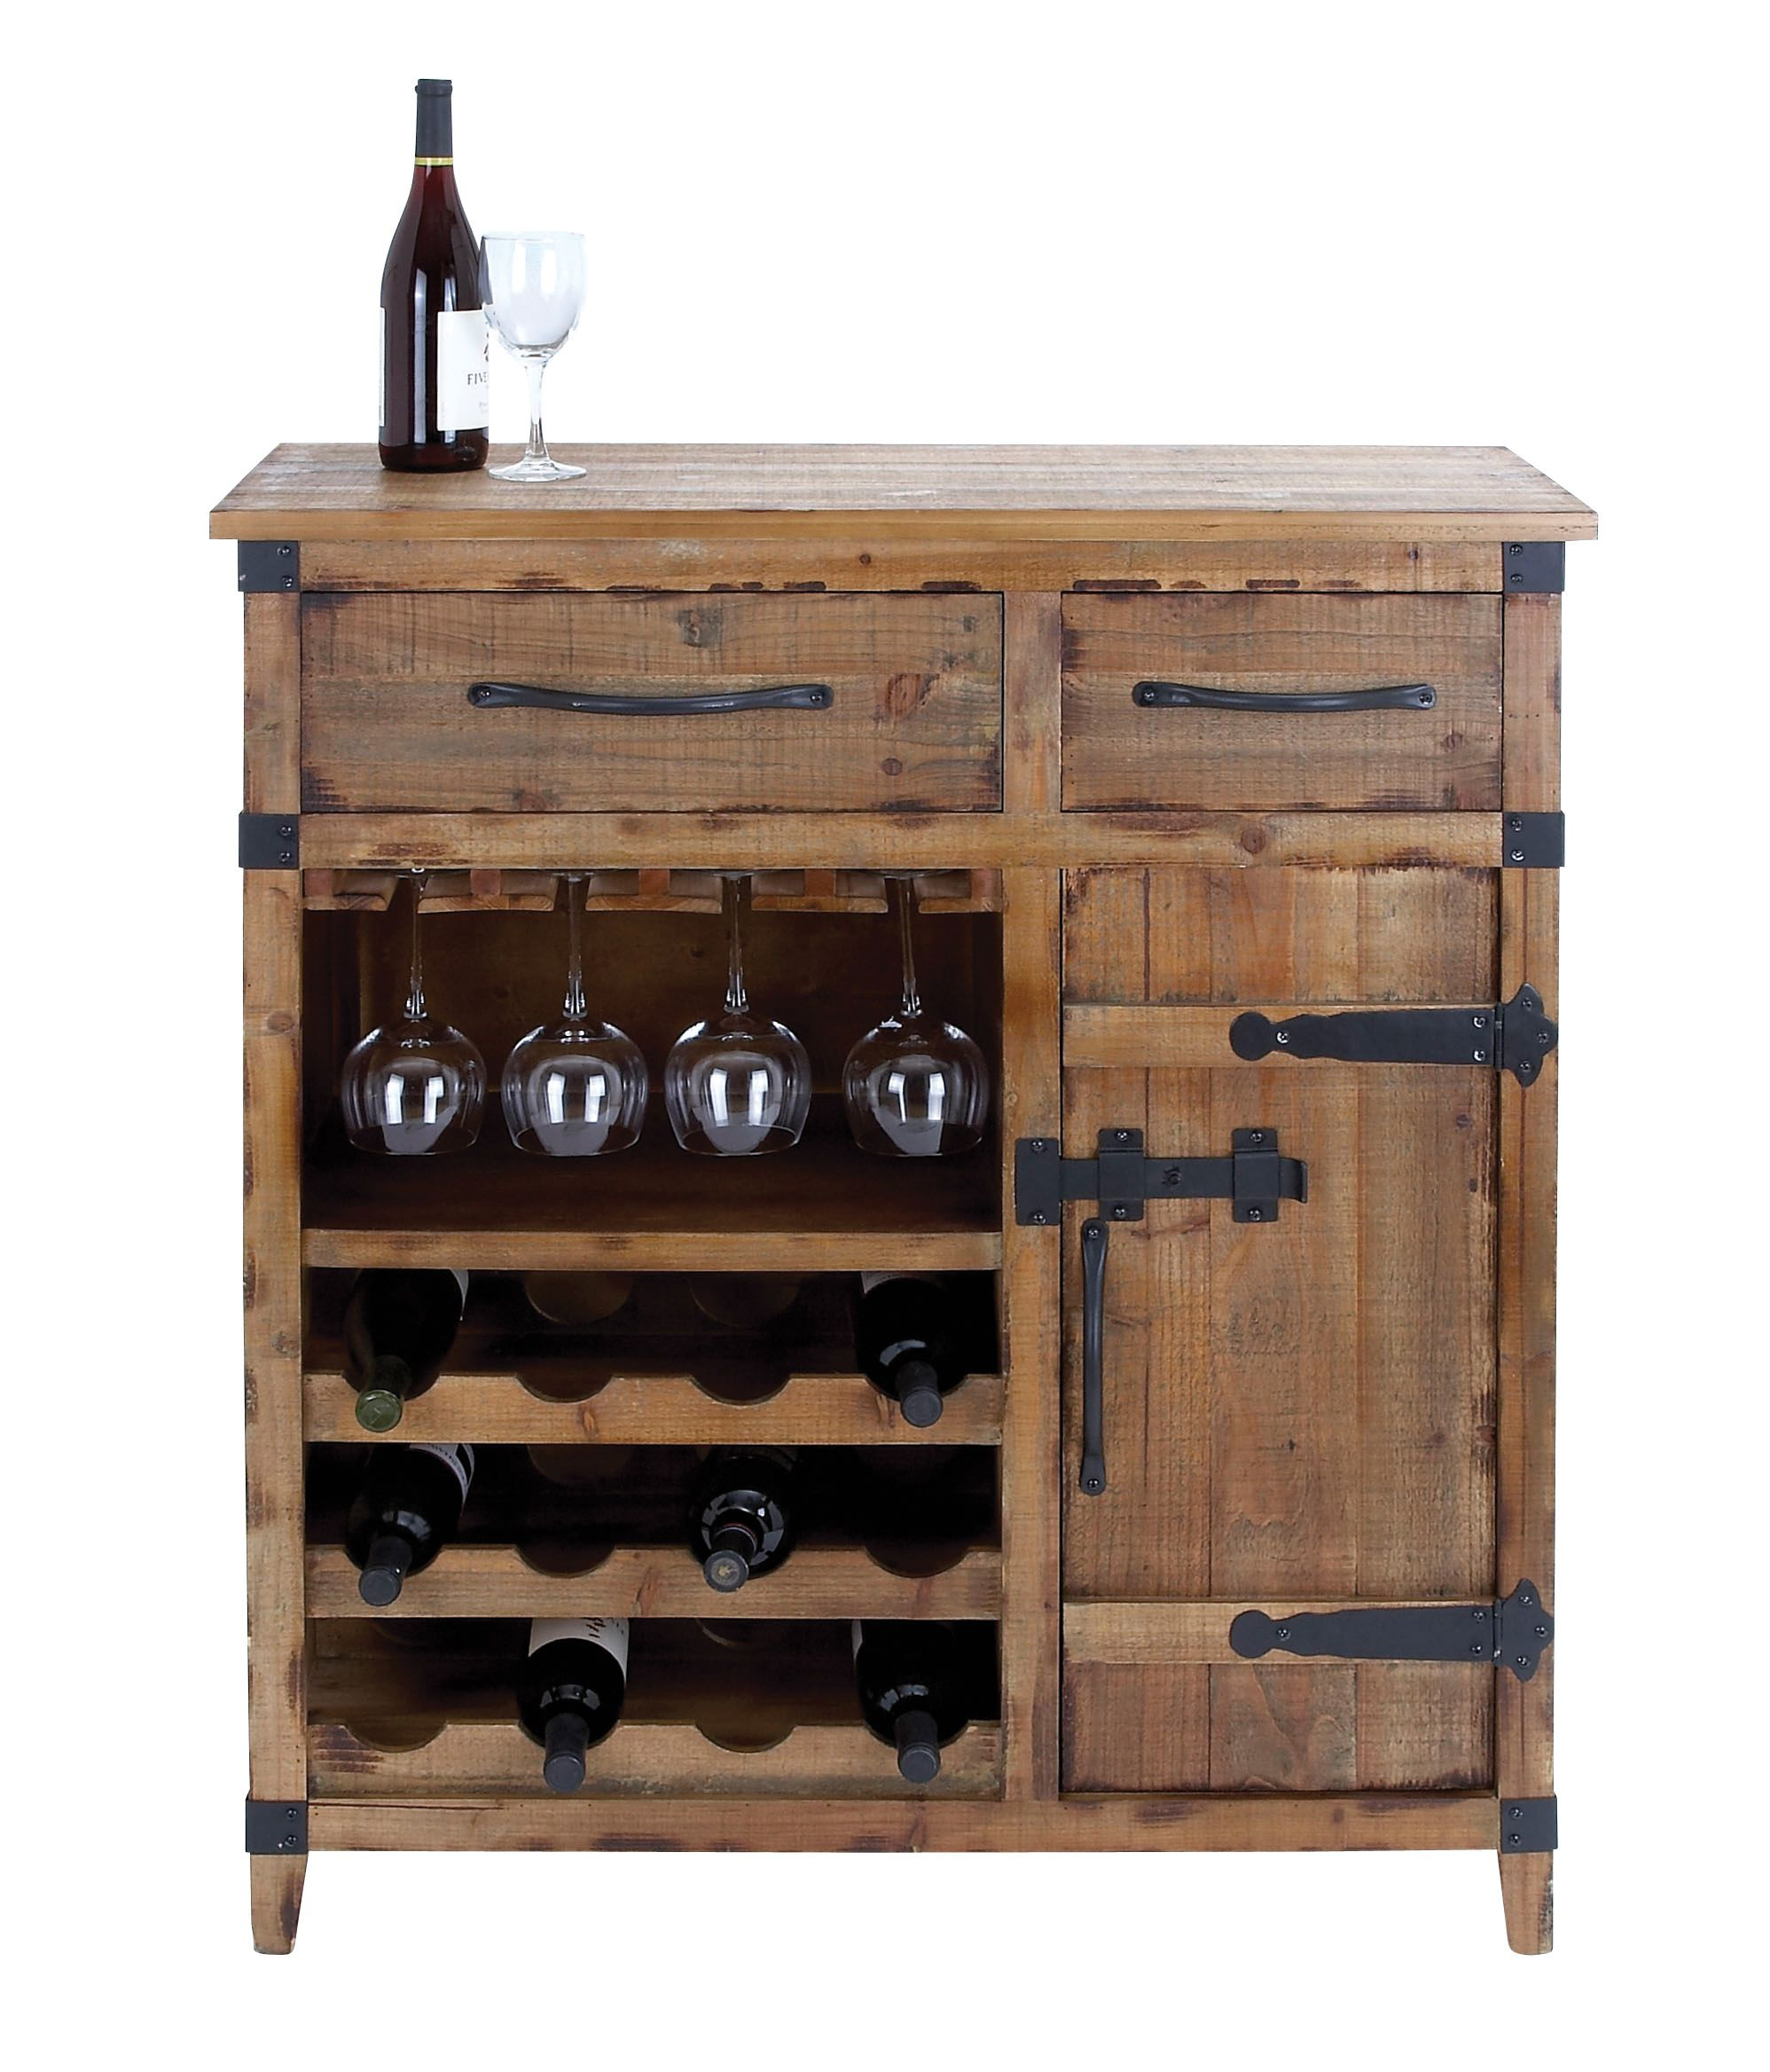 wall fullxfull zoom cabinet wine listing rack il mounted rustic